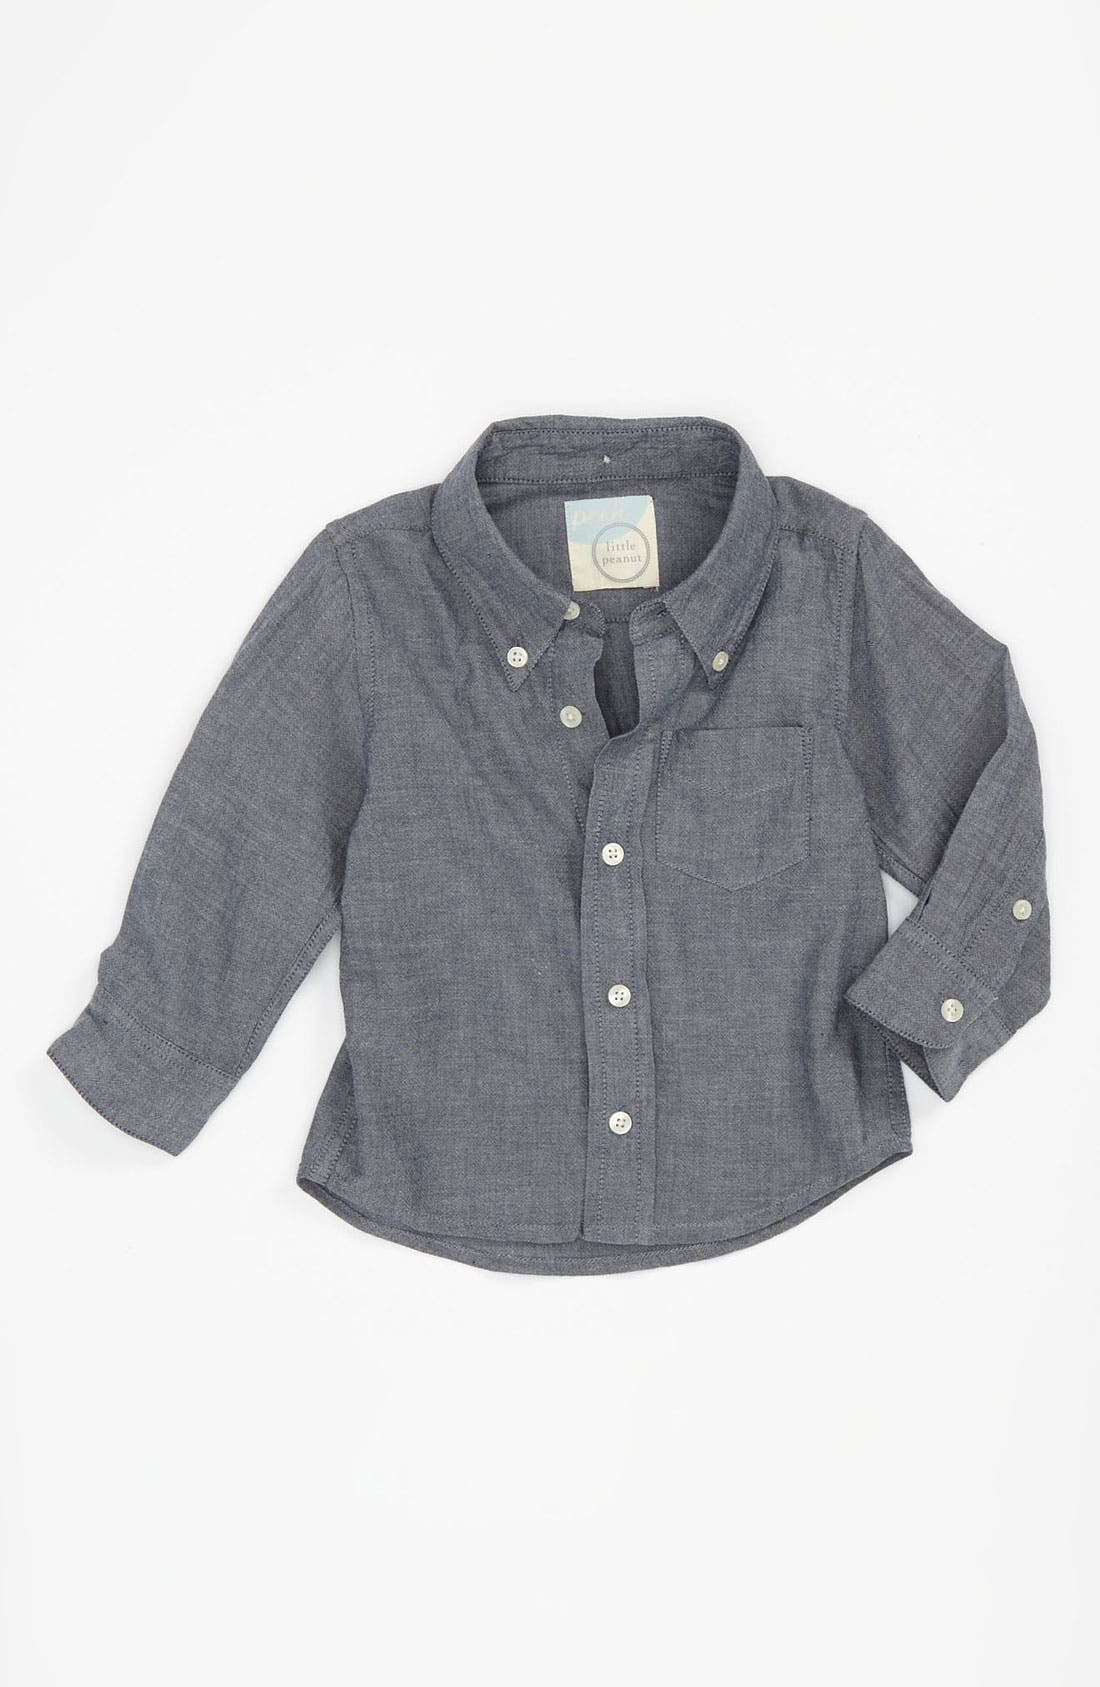 Alternate Image 1 Selected - Peek 'Clifton' Chambray Shirt (Infant)